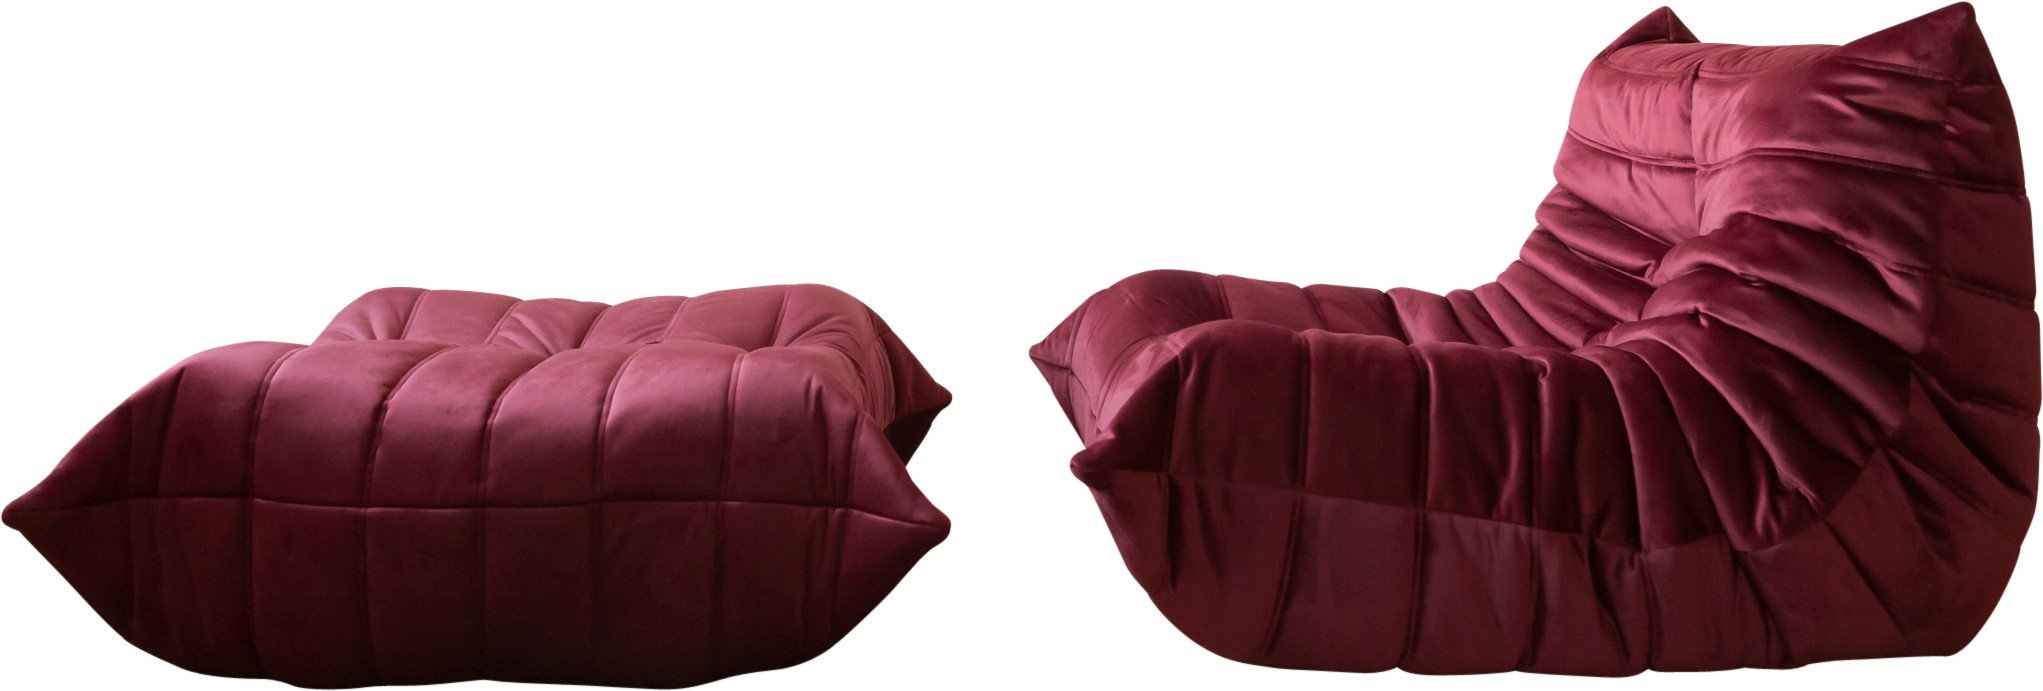 Togo Set of Armchair and Pouf by M. Ducaroy Manufactured, Ligne Roset, France, 1974